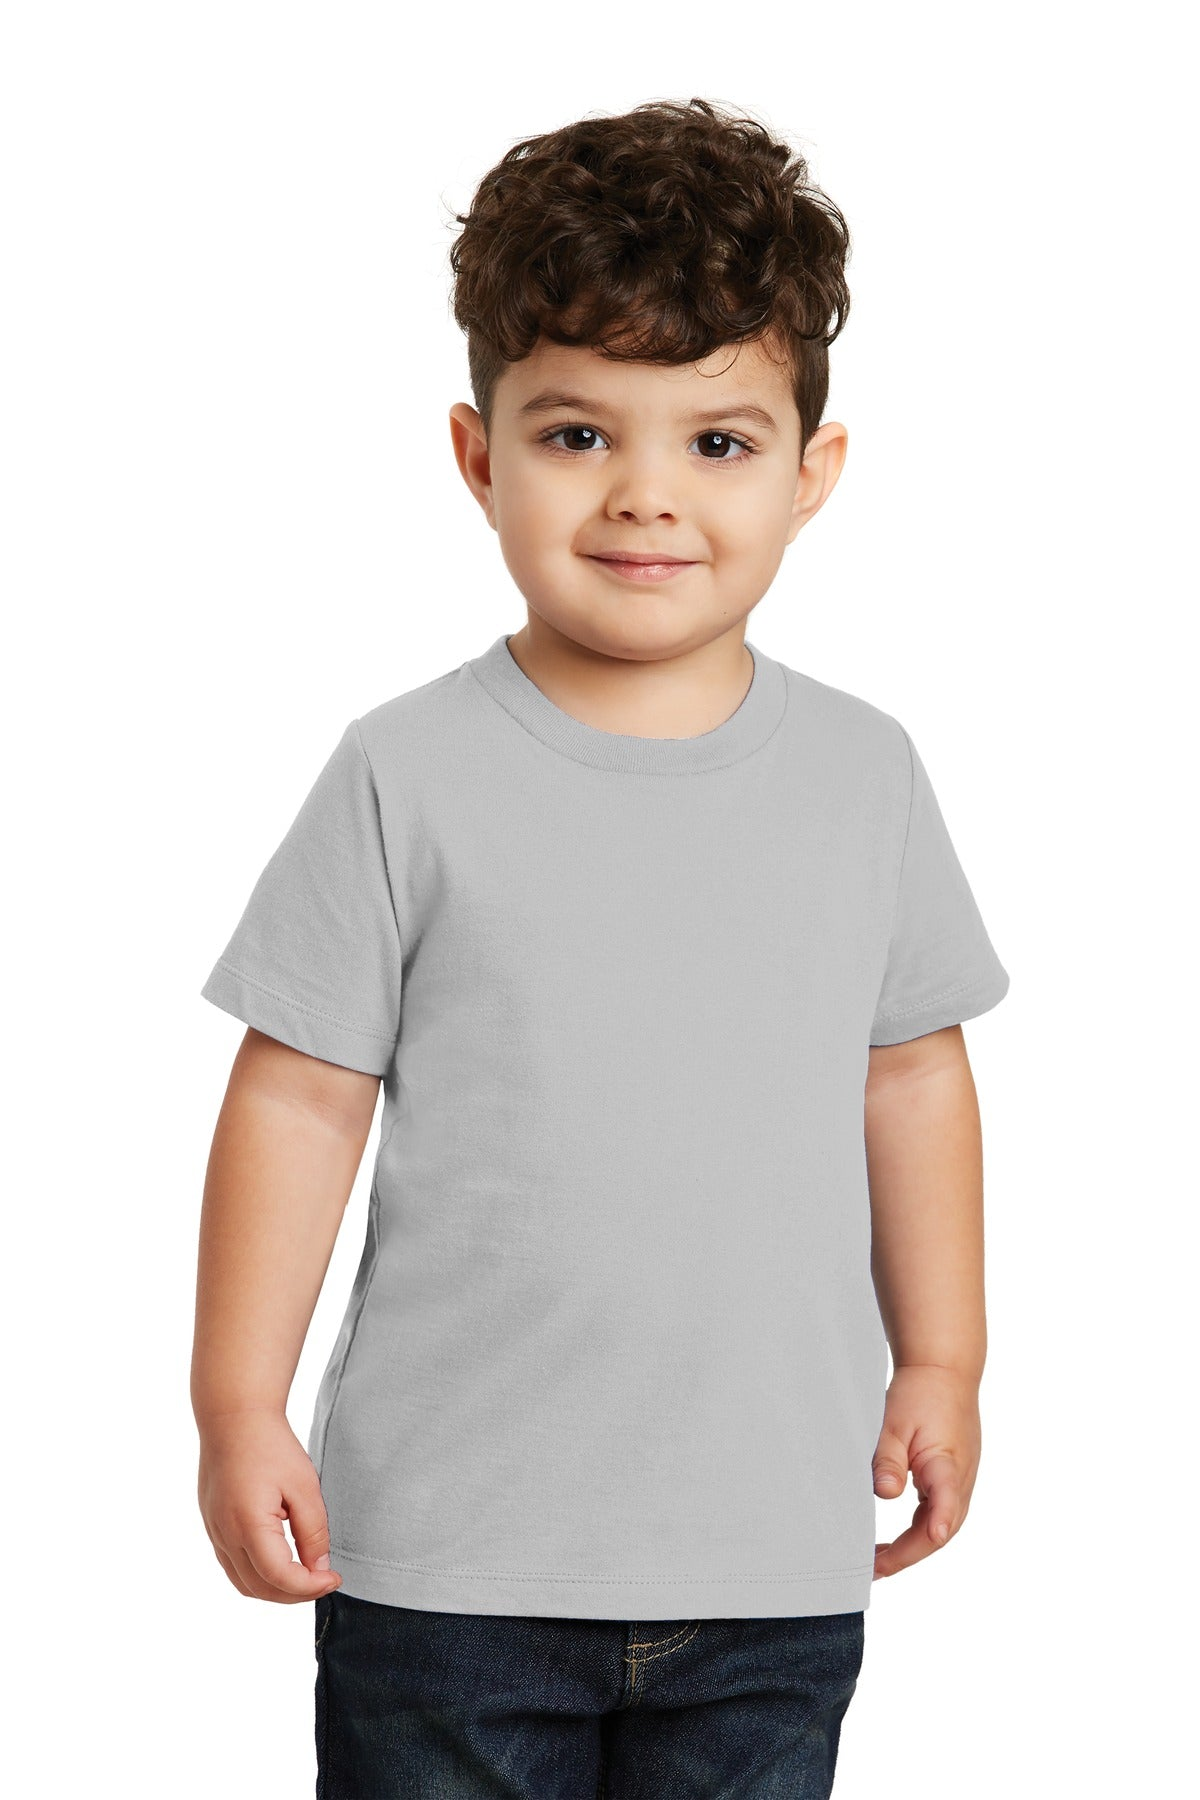 Silver Port & Company Toddler Fan Favorite T-Shirt